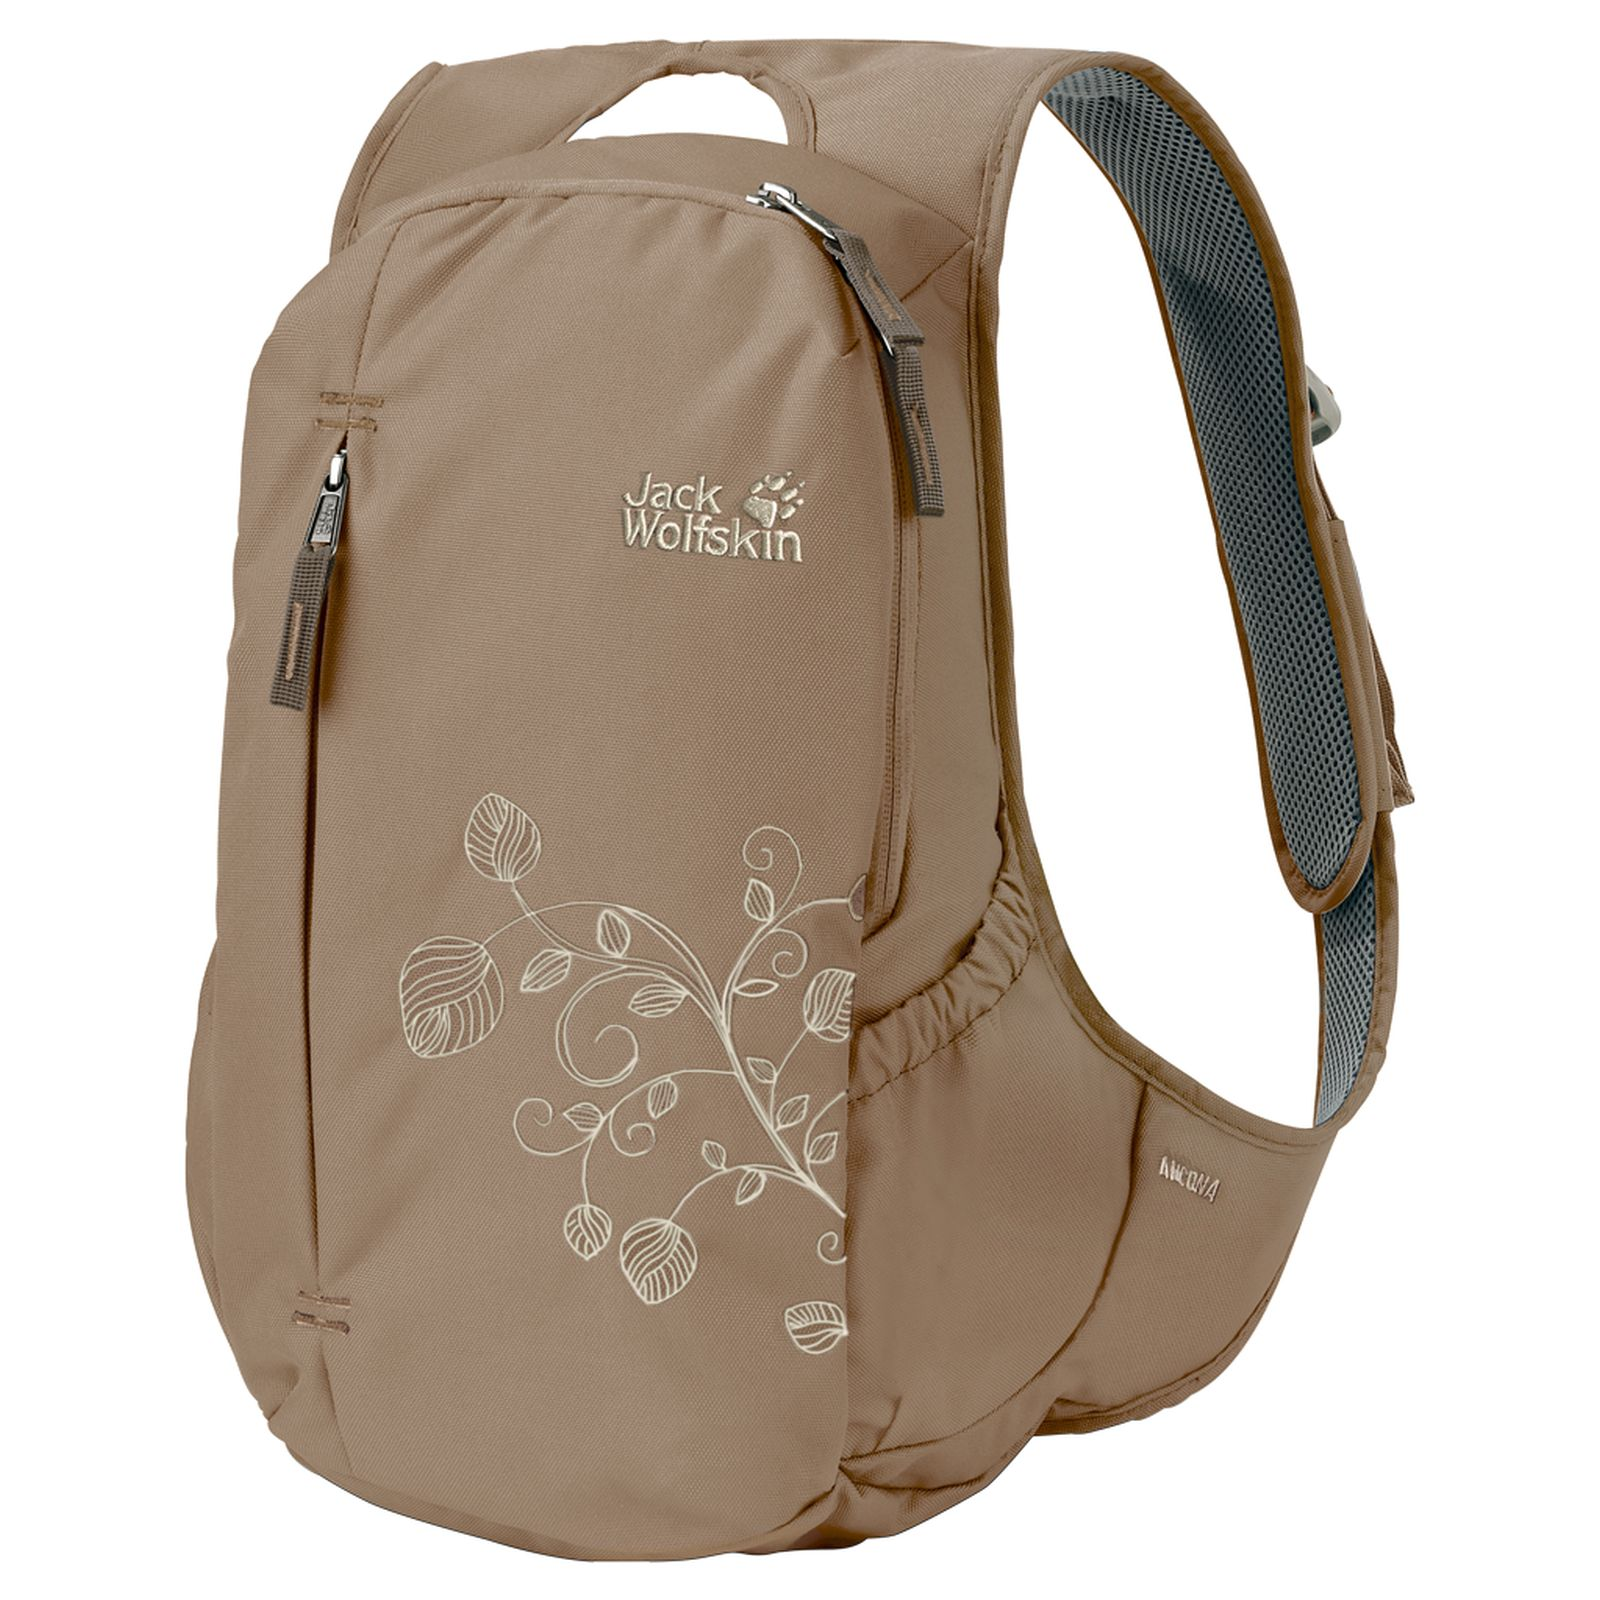 jack wolfskin damen tagesrucksack ancona beige ebay. Black Bedroom Furniture Sets. Home Design Ideas